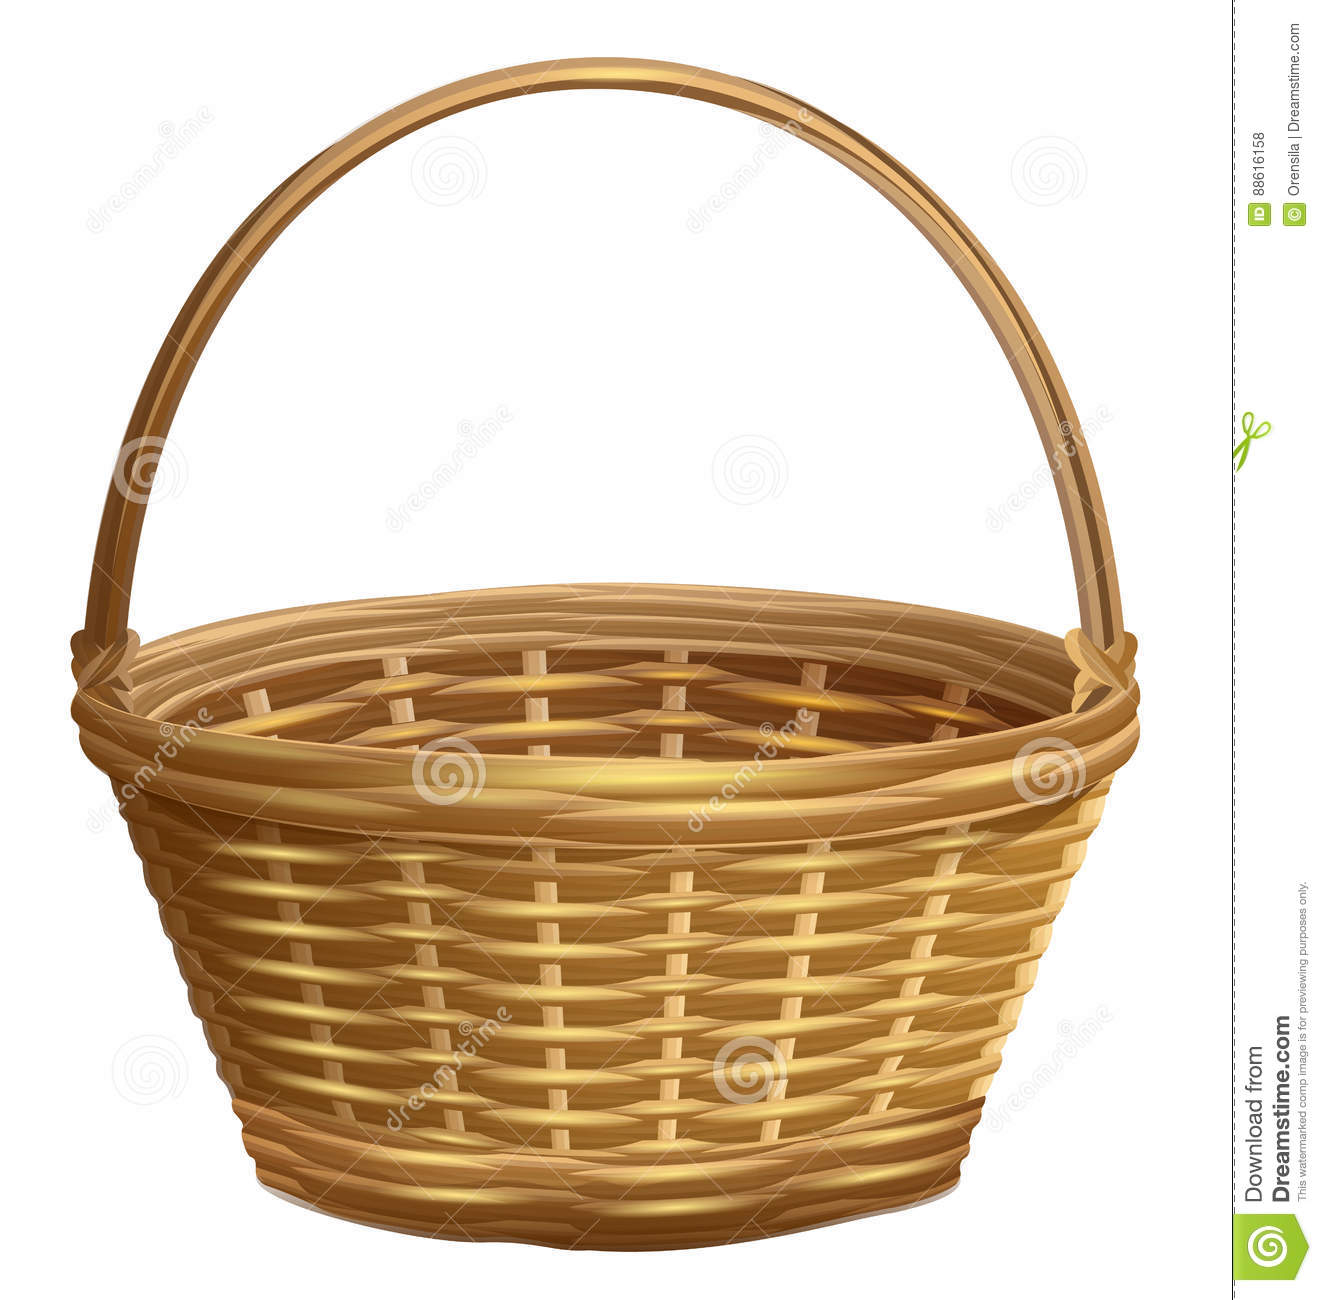 Empty Wicker Basket With Handle Arc Stock Vector Illustration Of